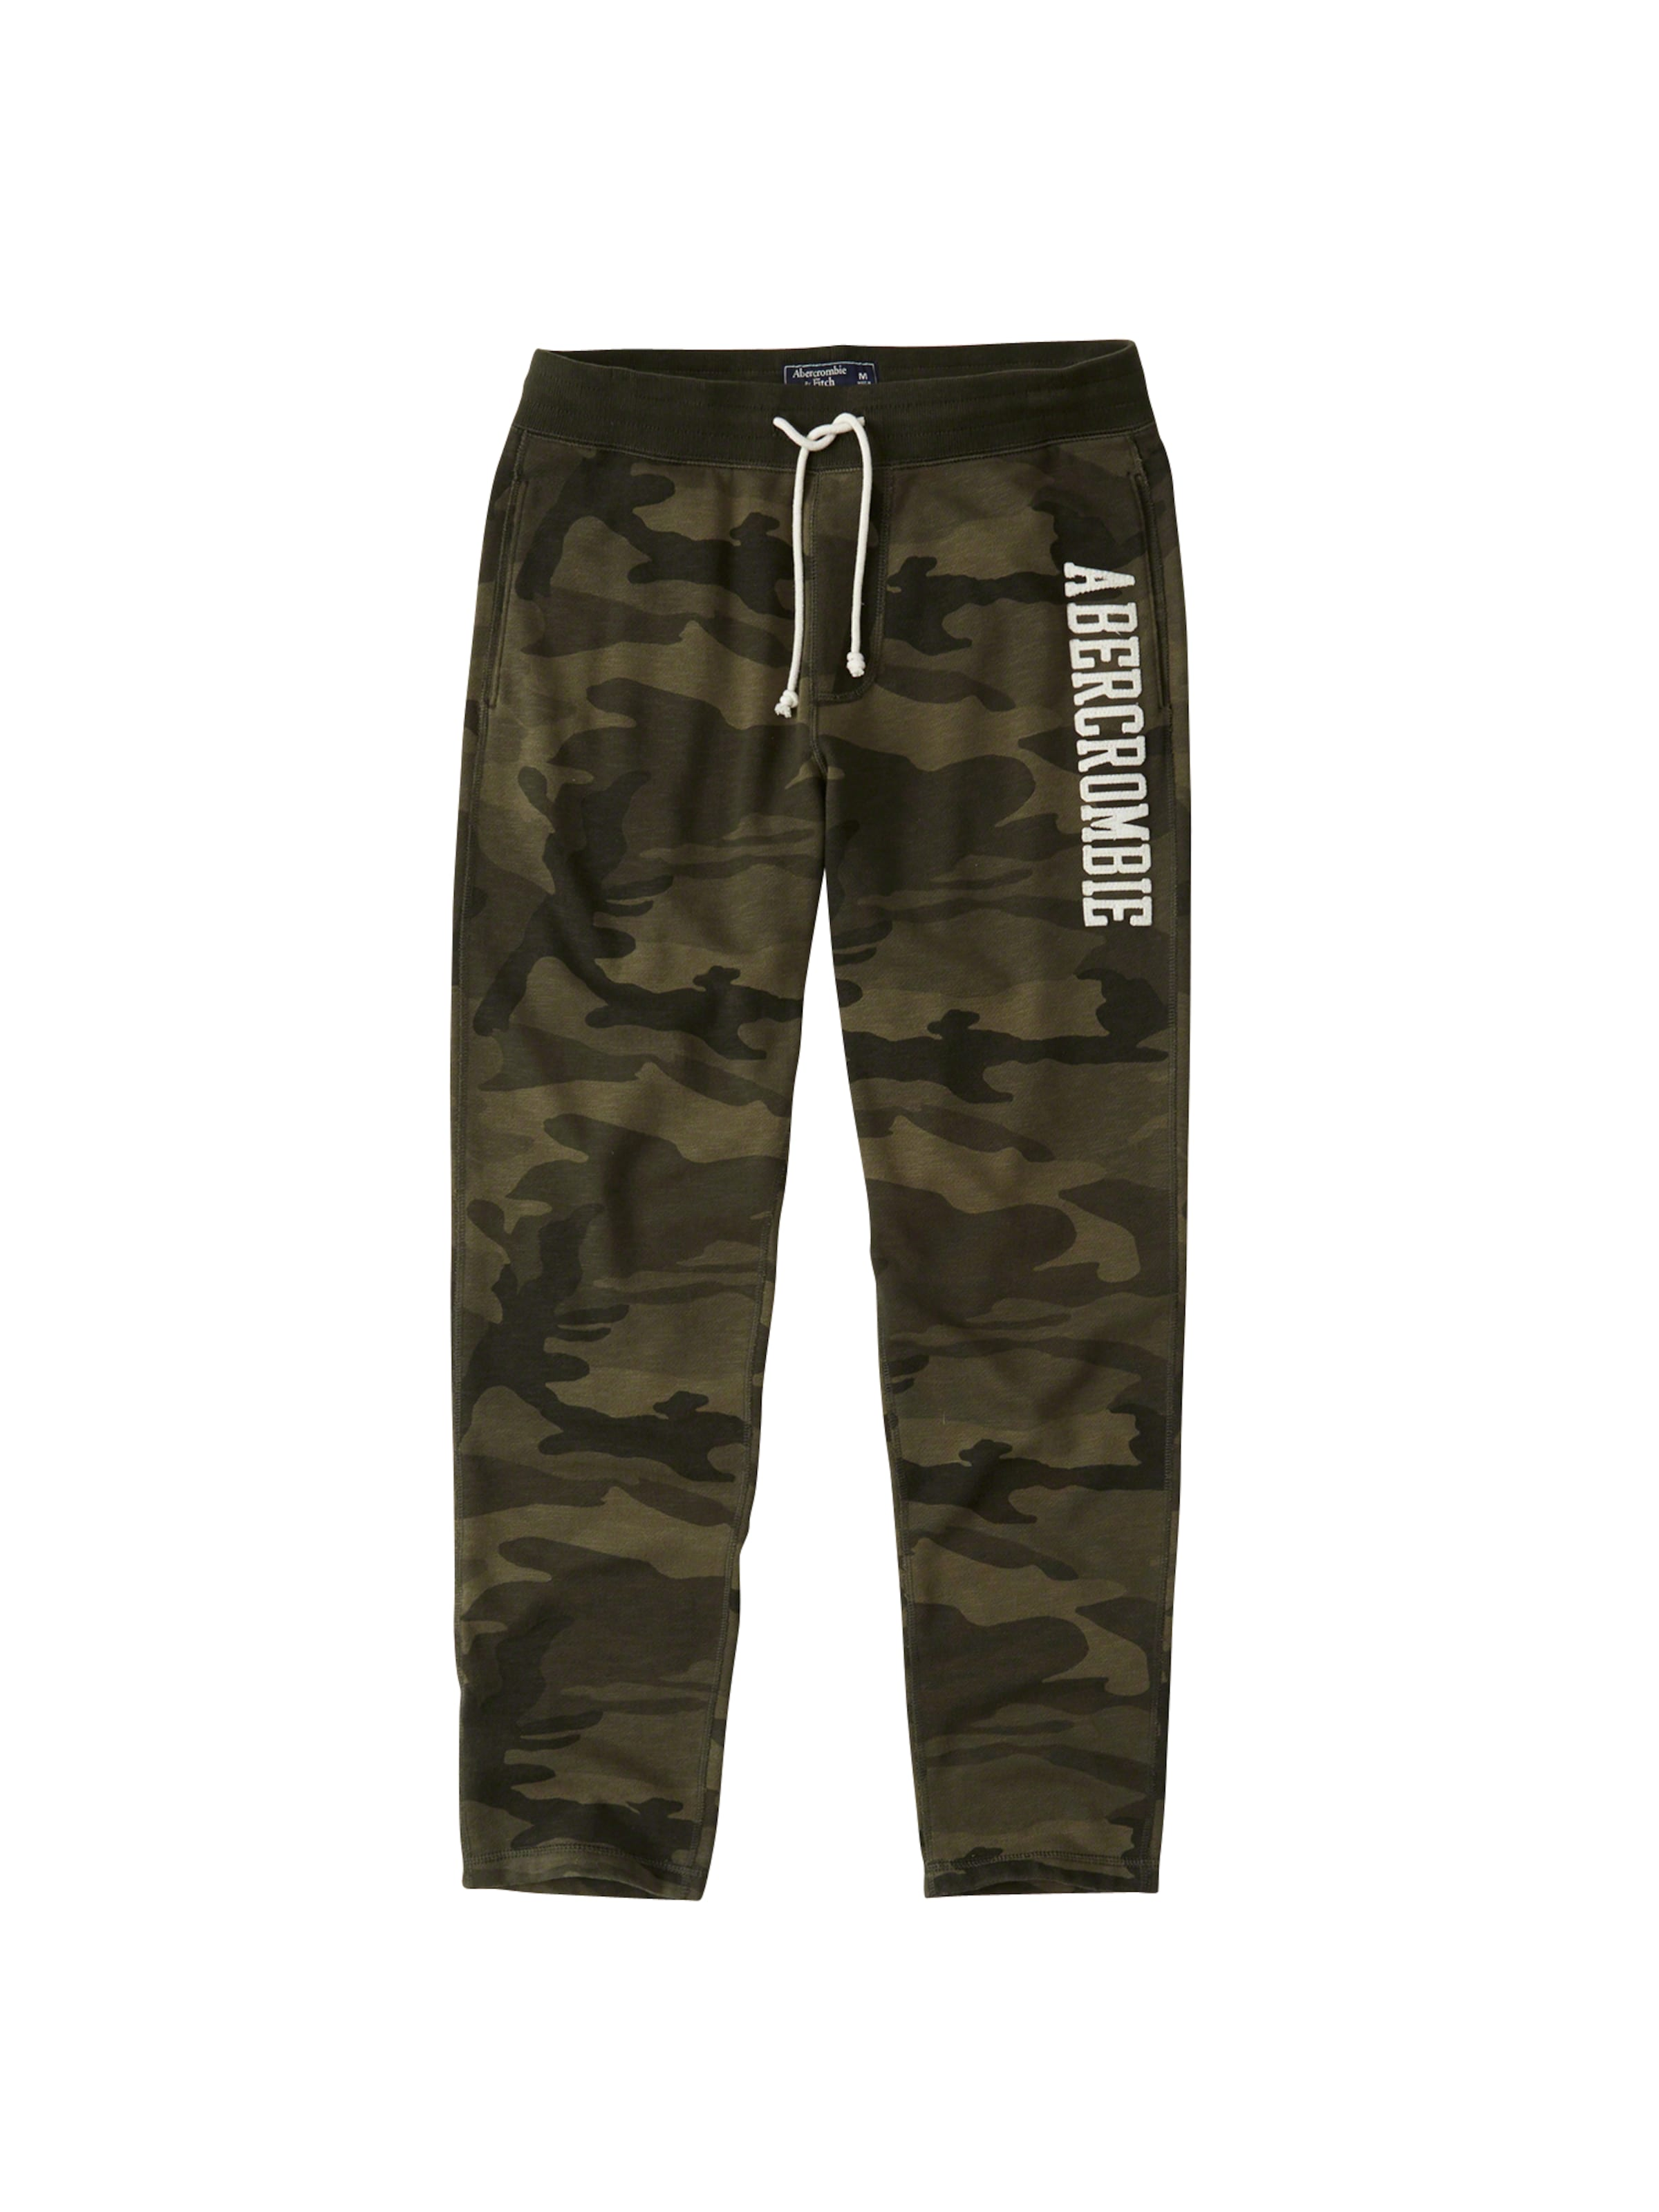 Abercrombieamp; Pantalon Olive Logo Camo' 'forever En Fitch Classic Pant ON0ymwv8n